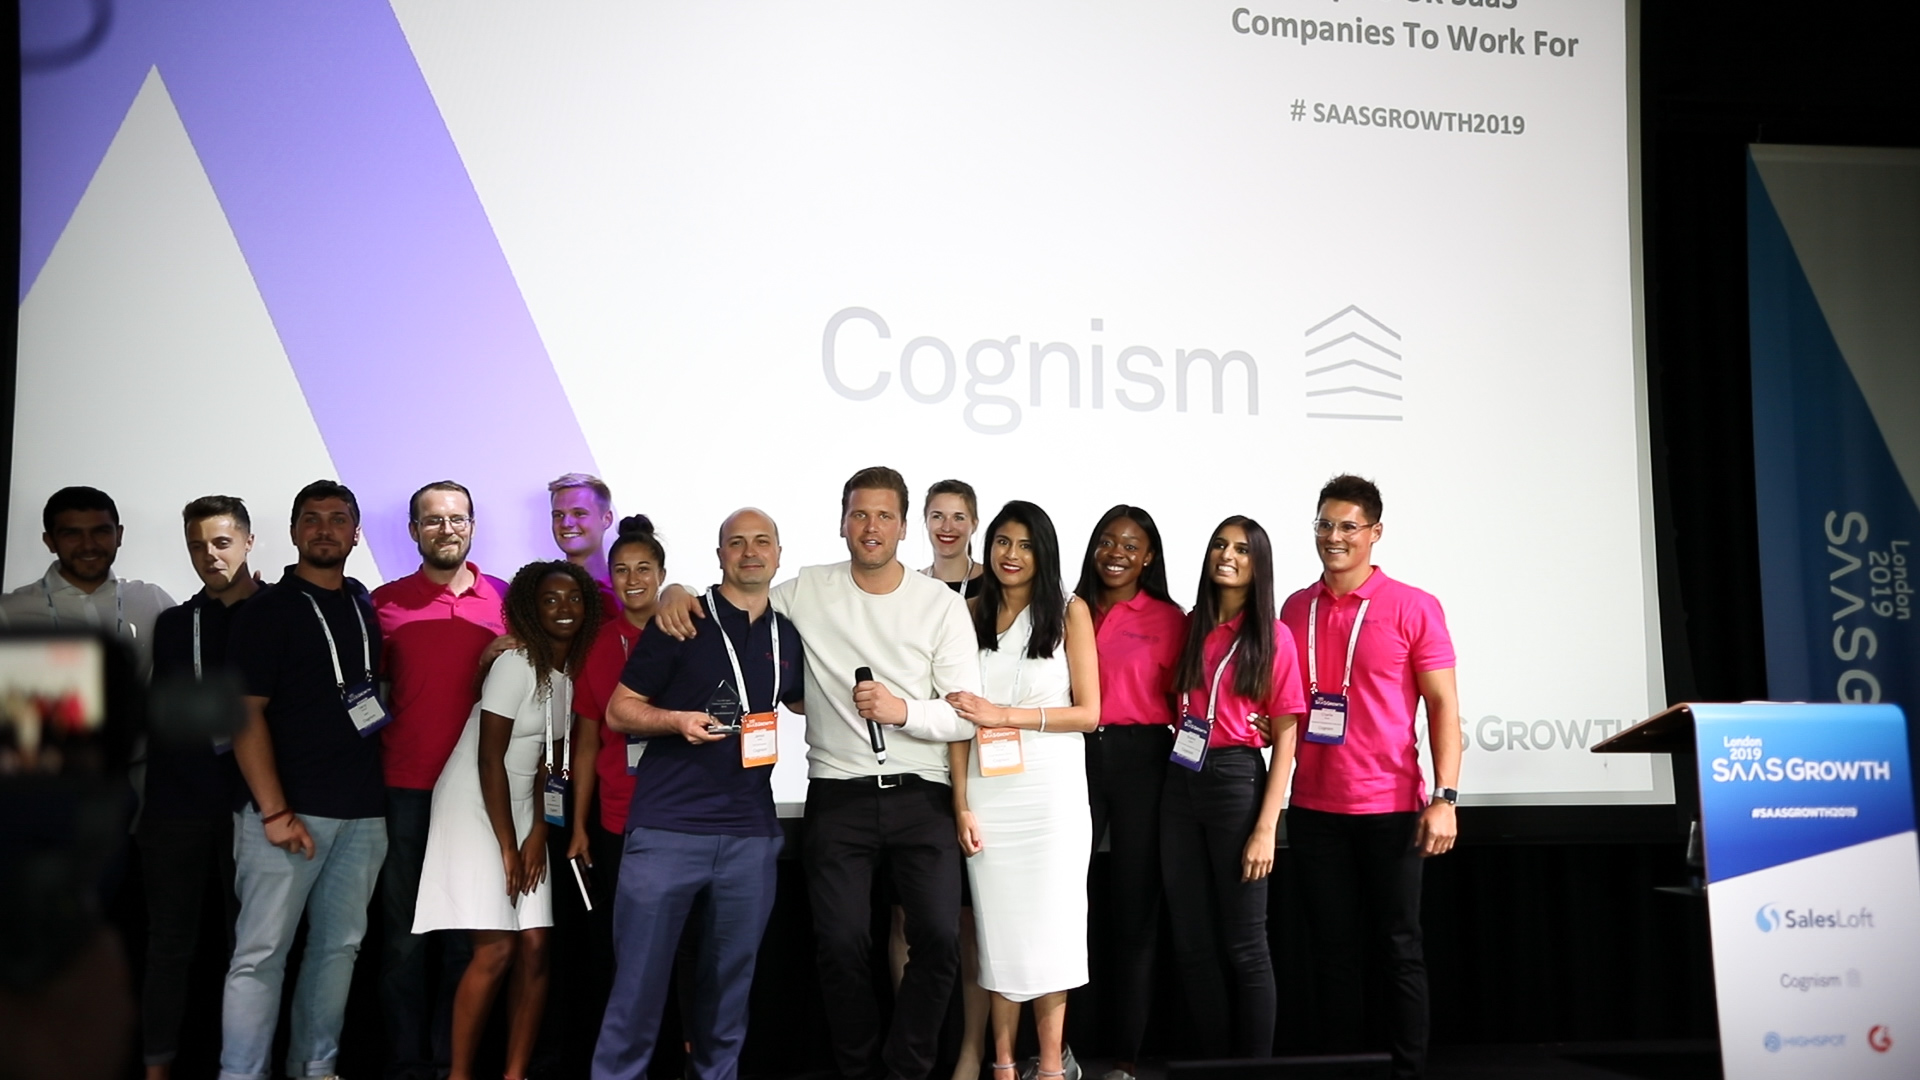 Team Cognism accepts the award!